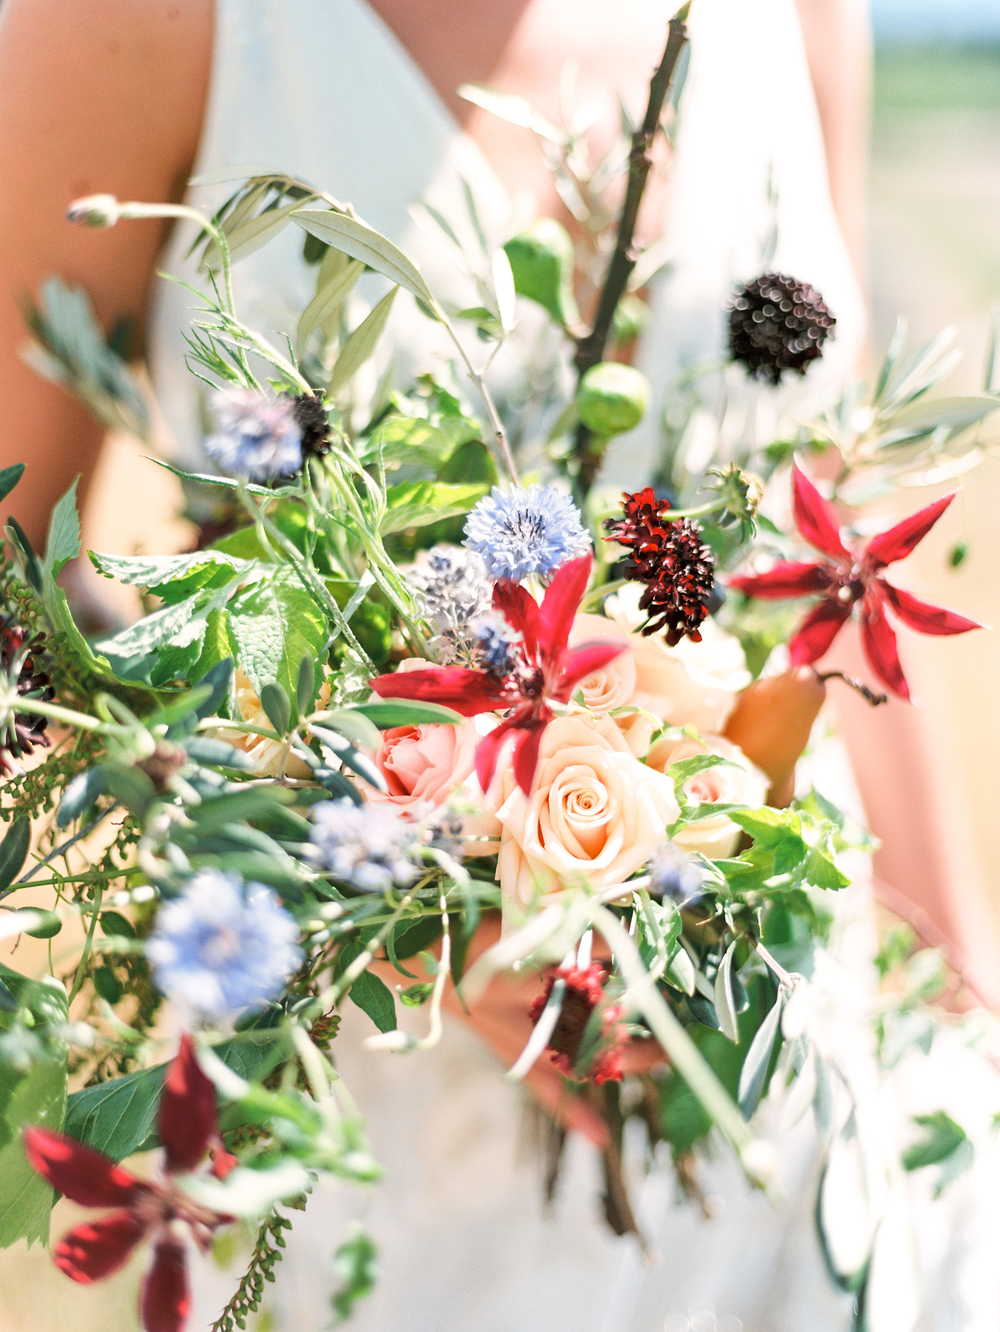 Bohemian Wedding Inspiration at Brush Creek Ranch | Wildflower bouquet by Hana Style Designs | Photography: Lisa O'Dwyer